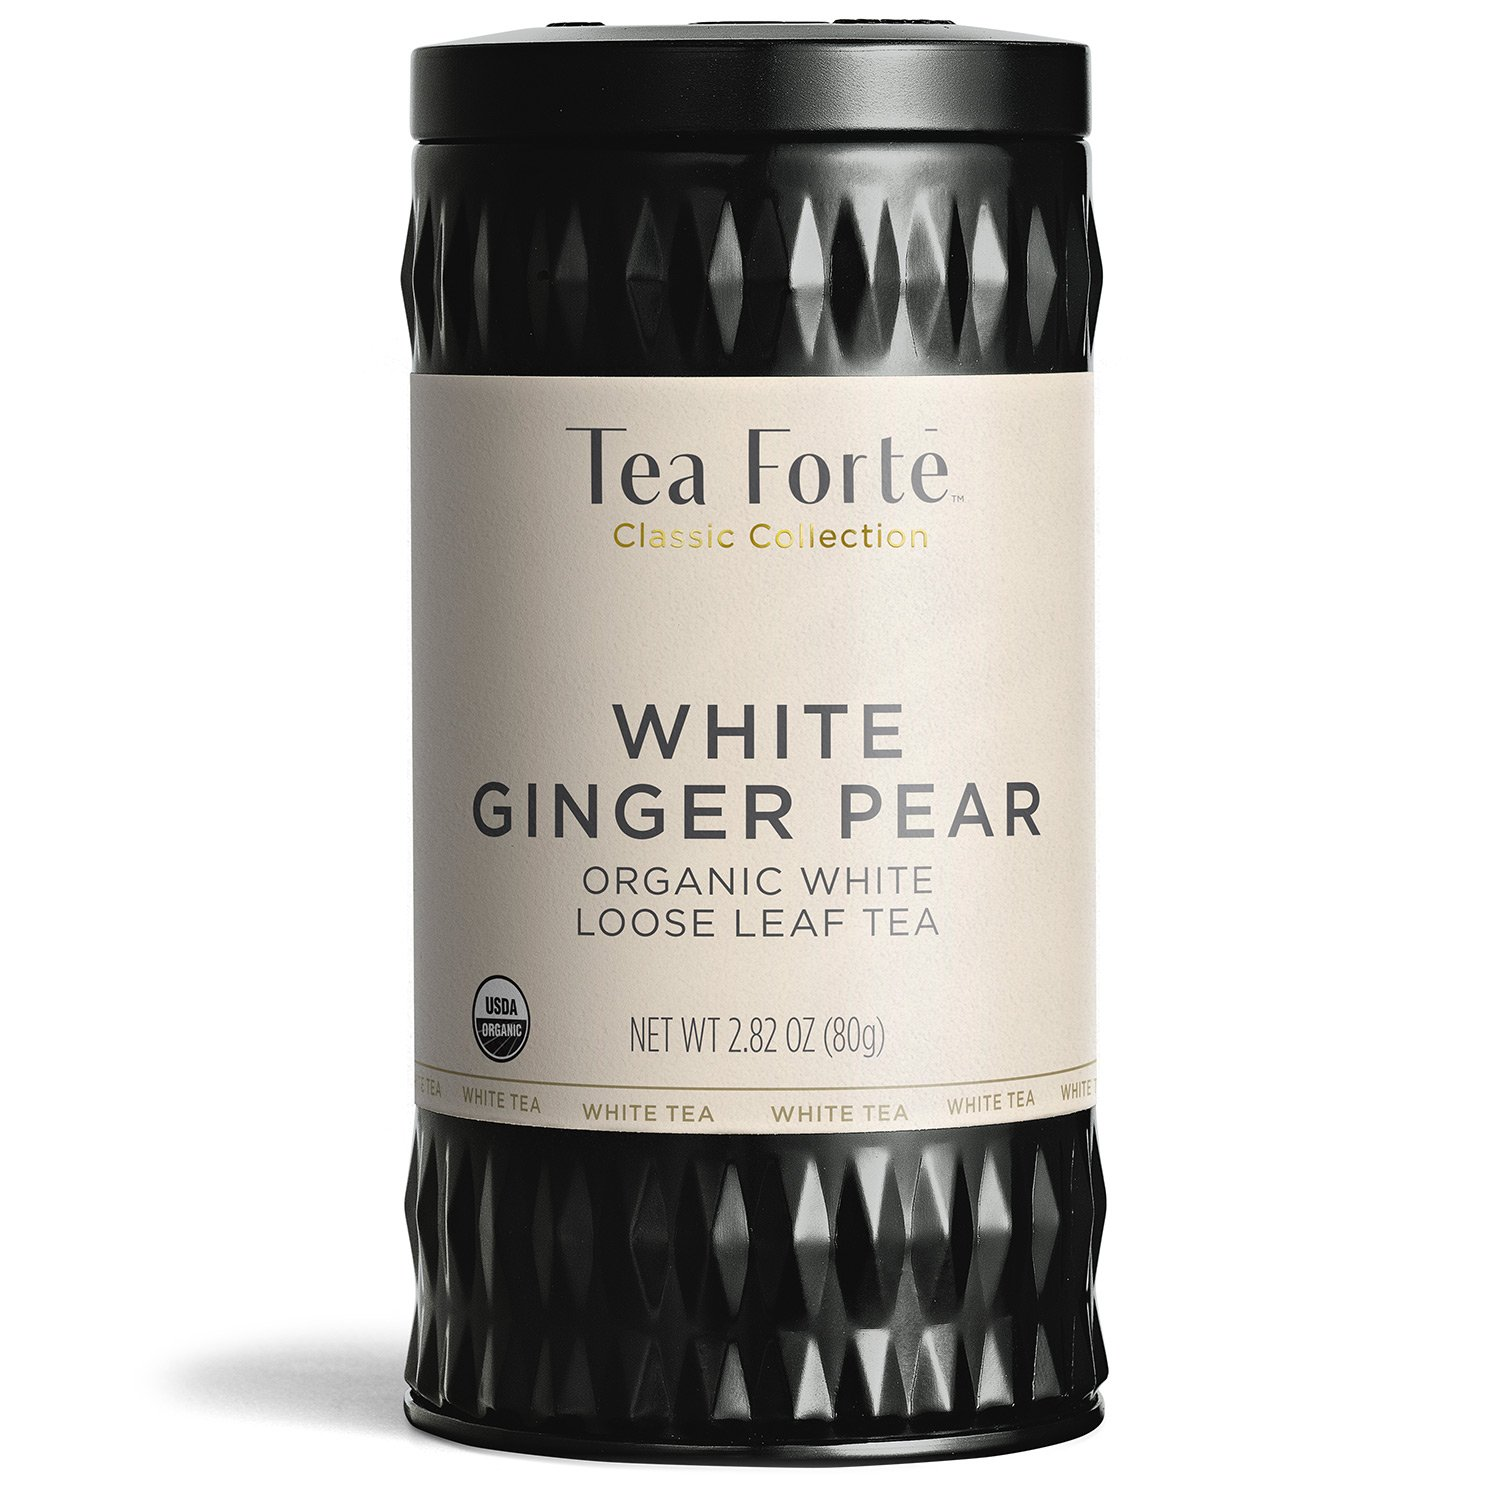 Tea Forté Organic White Tea WHITE GINGER PEAR, 2.82 Ounce Loose Leaf Tea Canister by Tea Forte